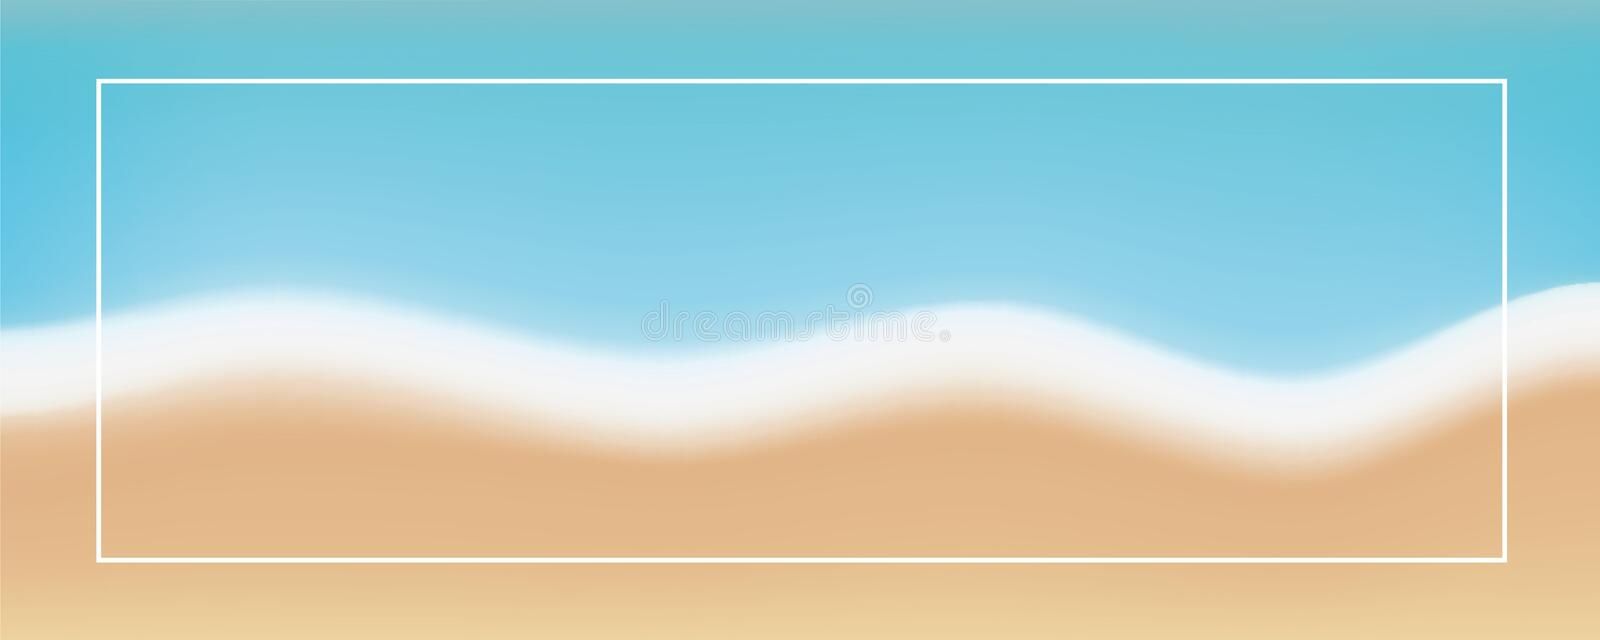 Abstract beach background in soft retro colors stock illustration